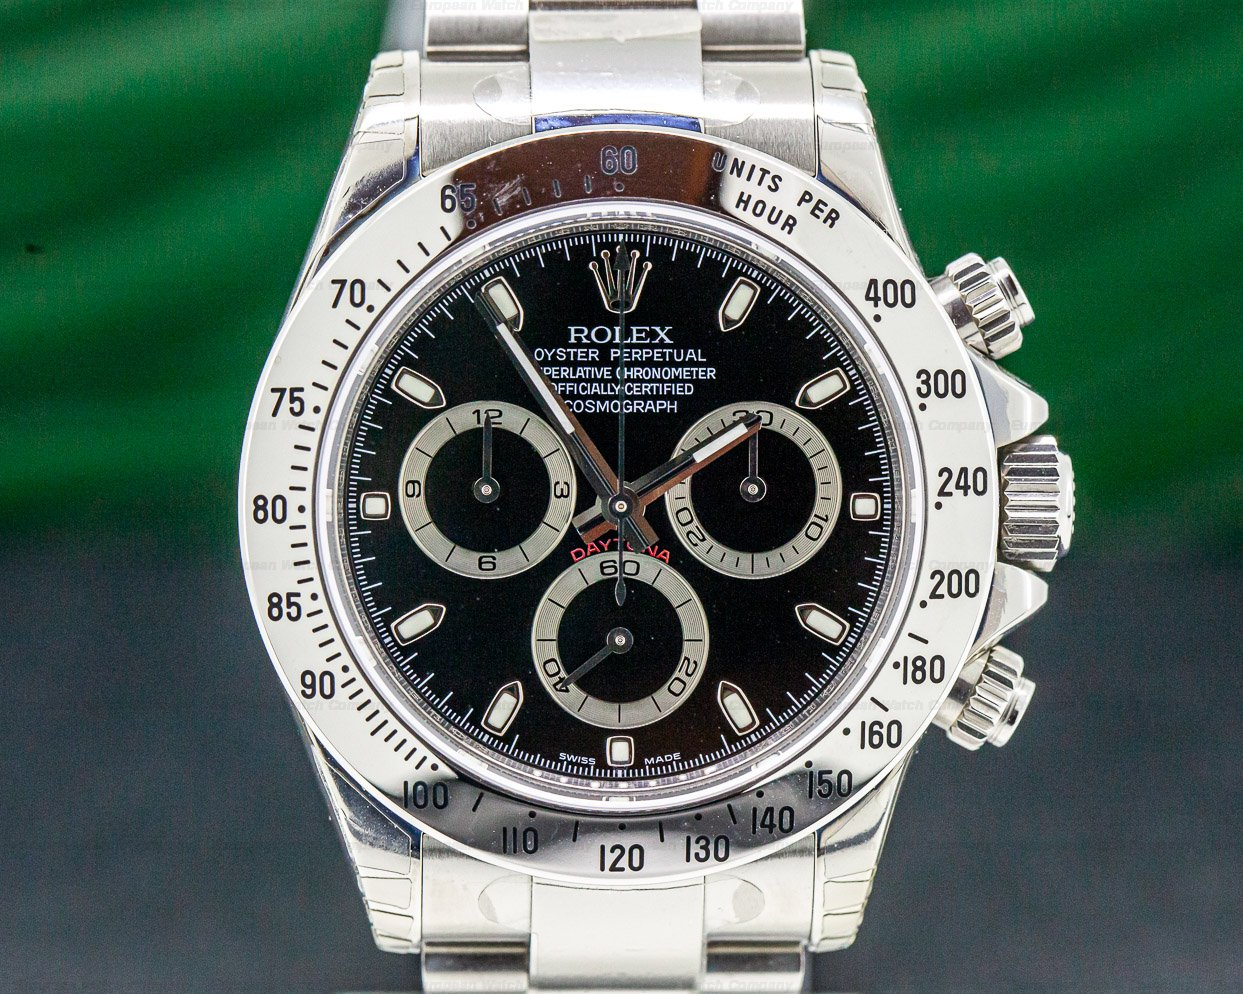 Rolex 116520 Daytona 116520 Black Dial SS NEW OLD STOCK